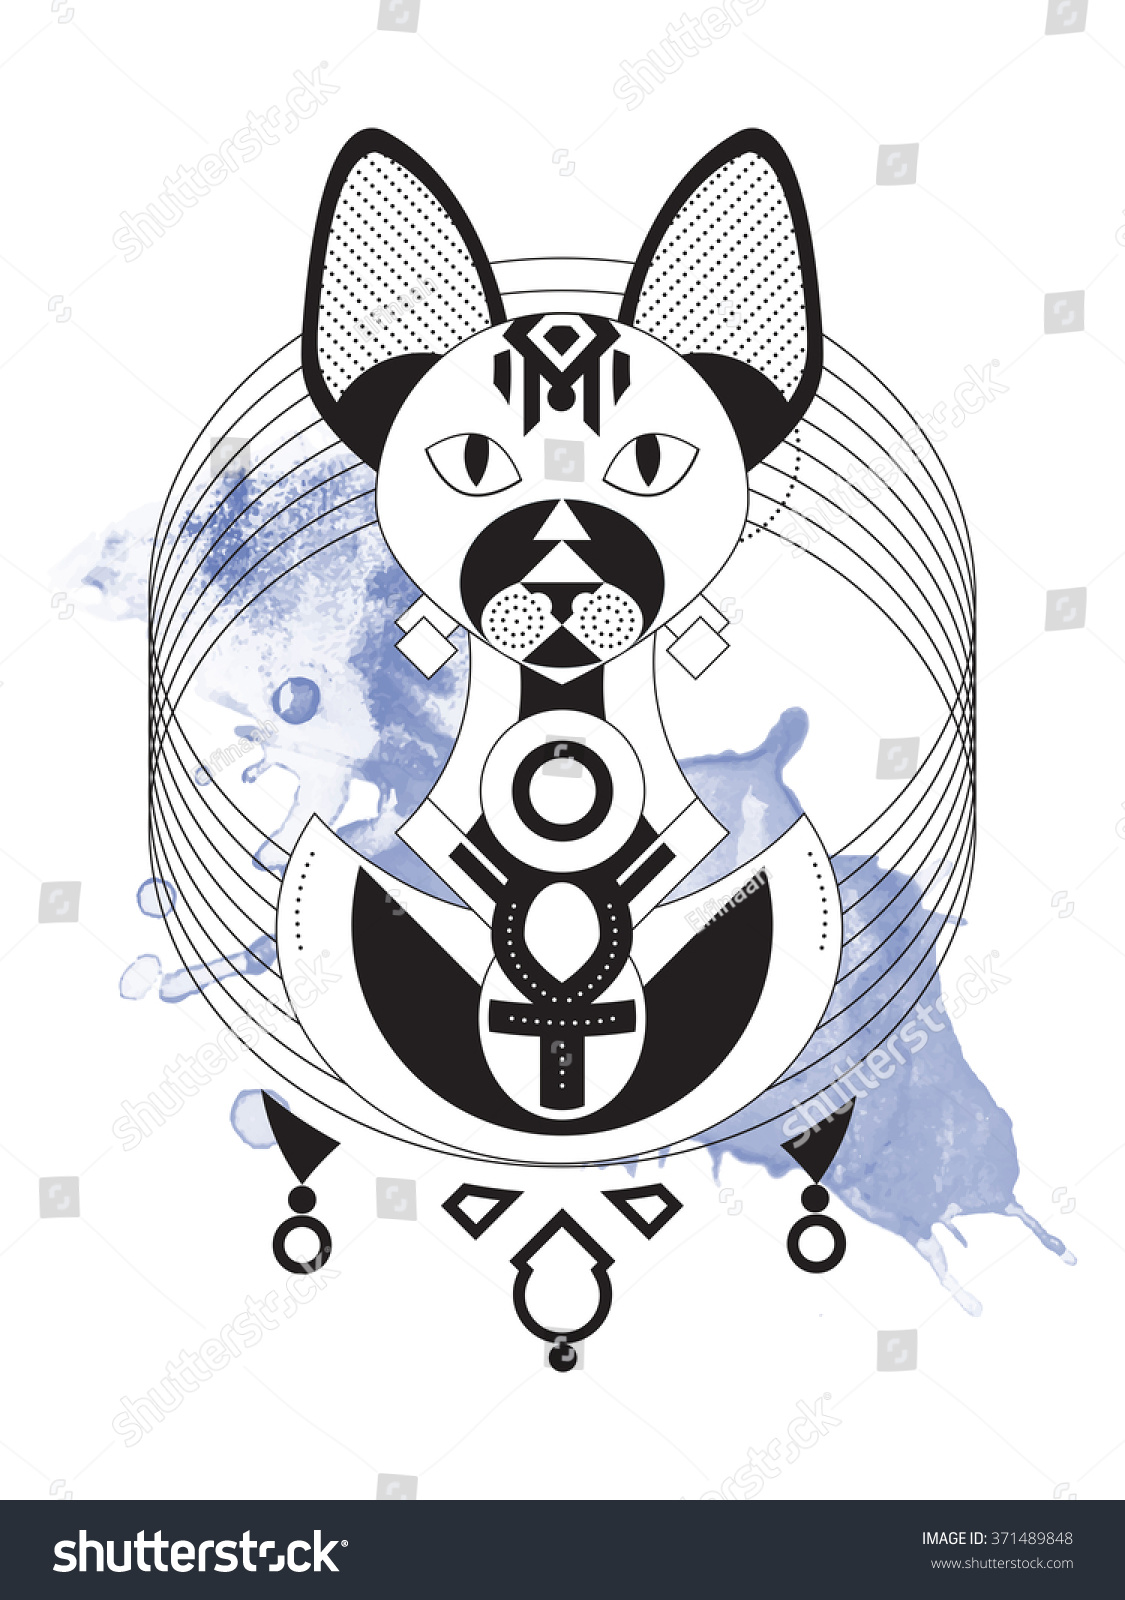 Geometric illustration stylized sphynx cat ancient stock vector geometric illustration of stylized sphynx cat from ancient egypt goddess bastet wearing ankh necklace biocorpaavc